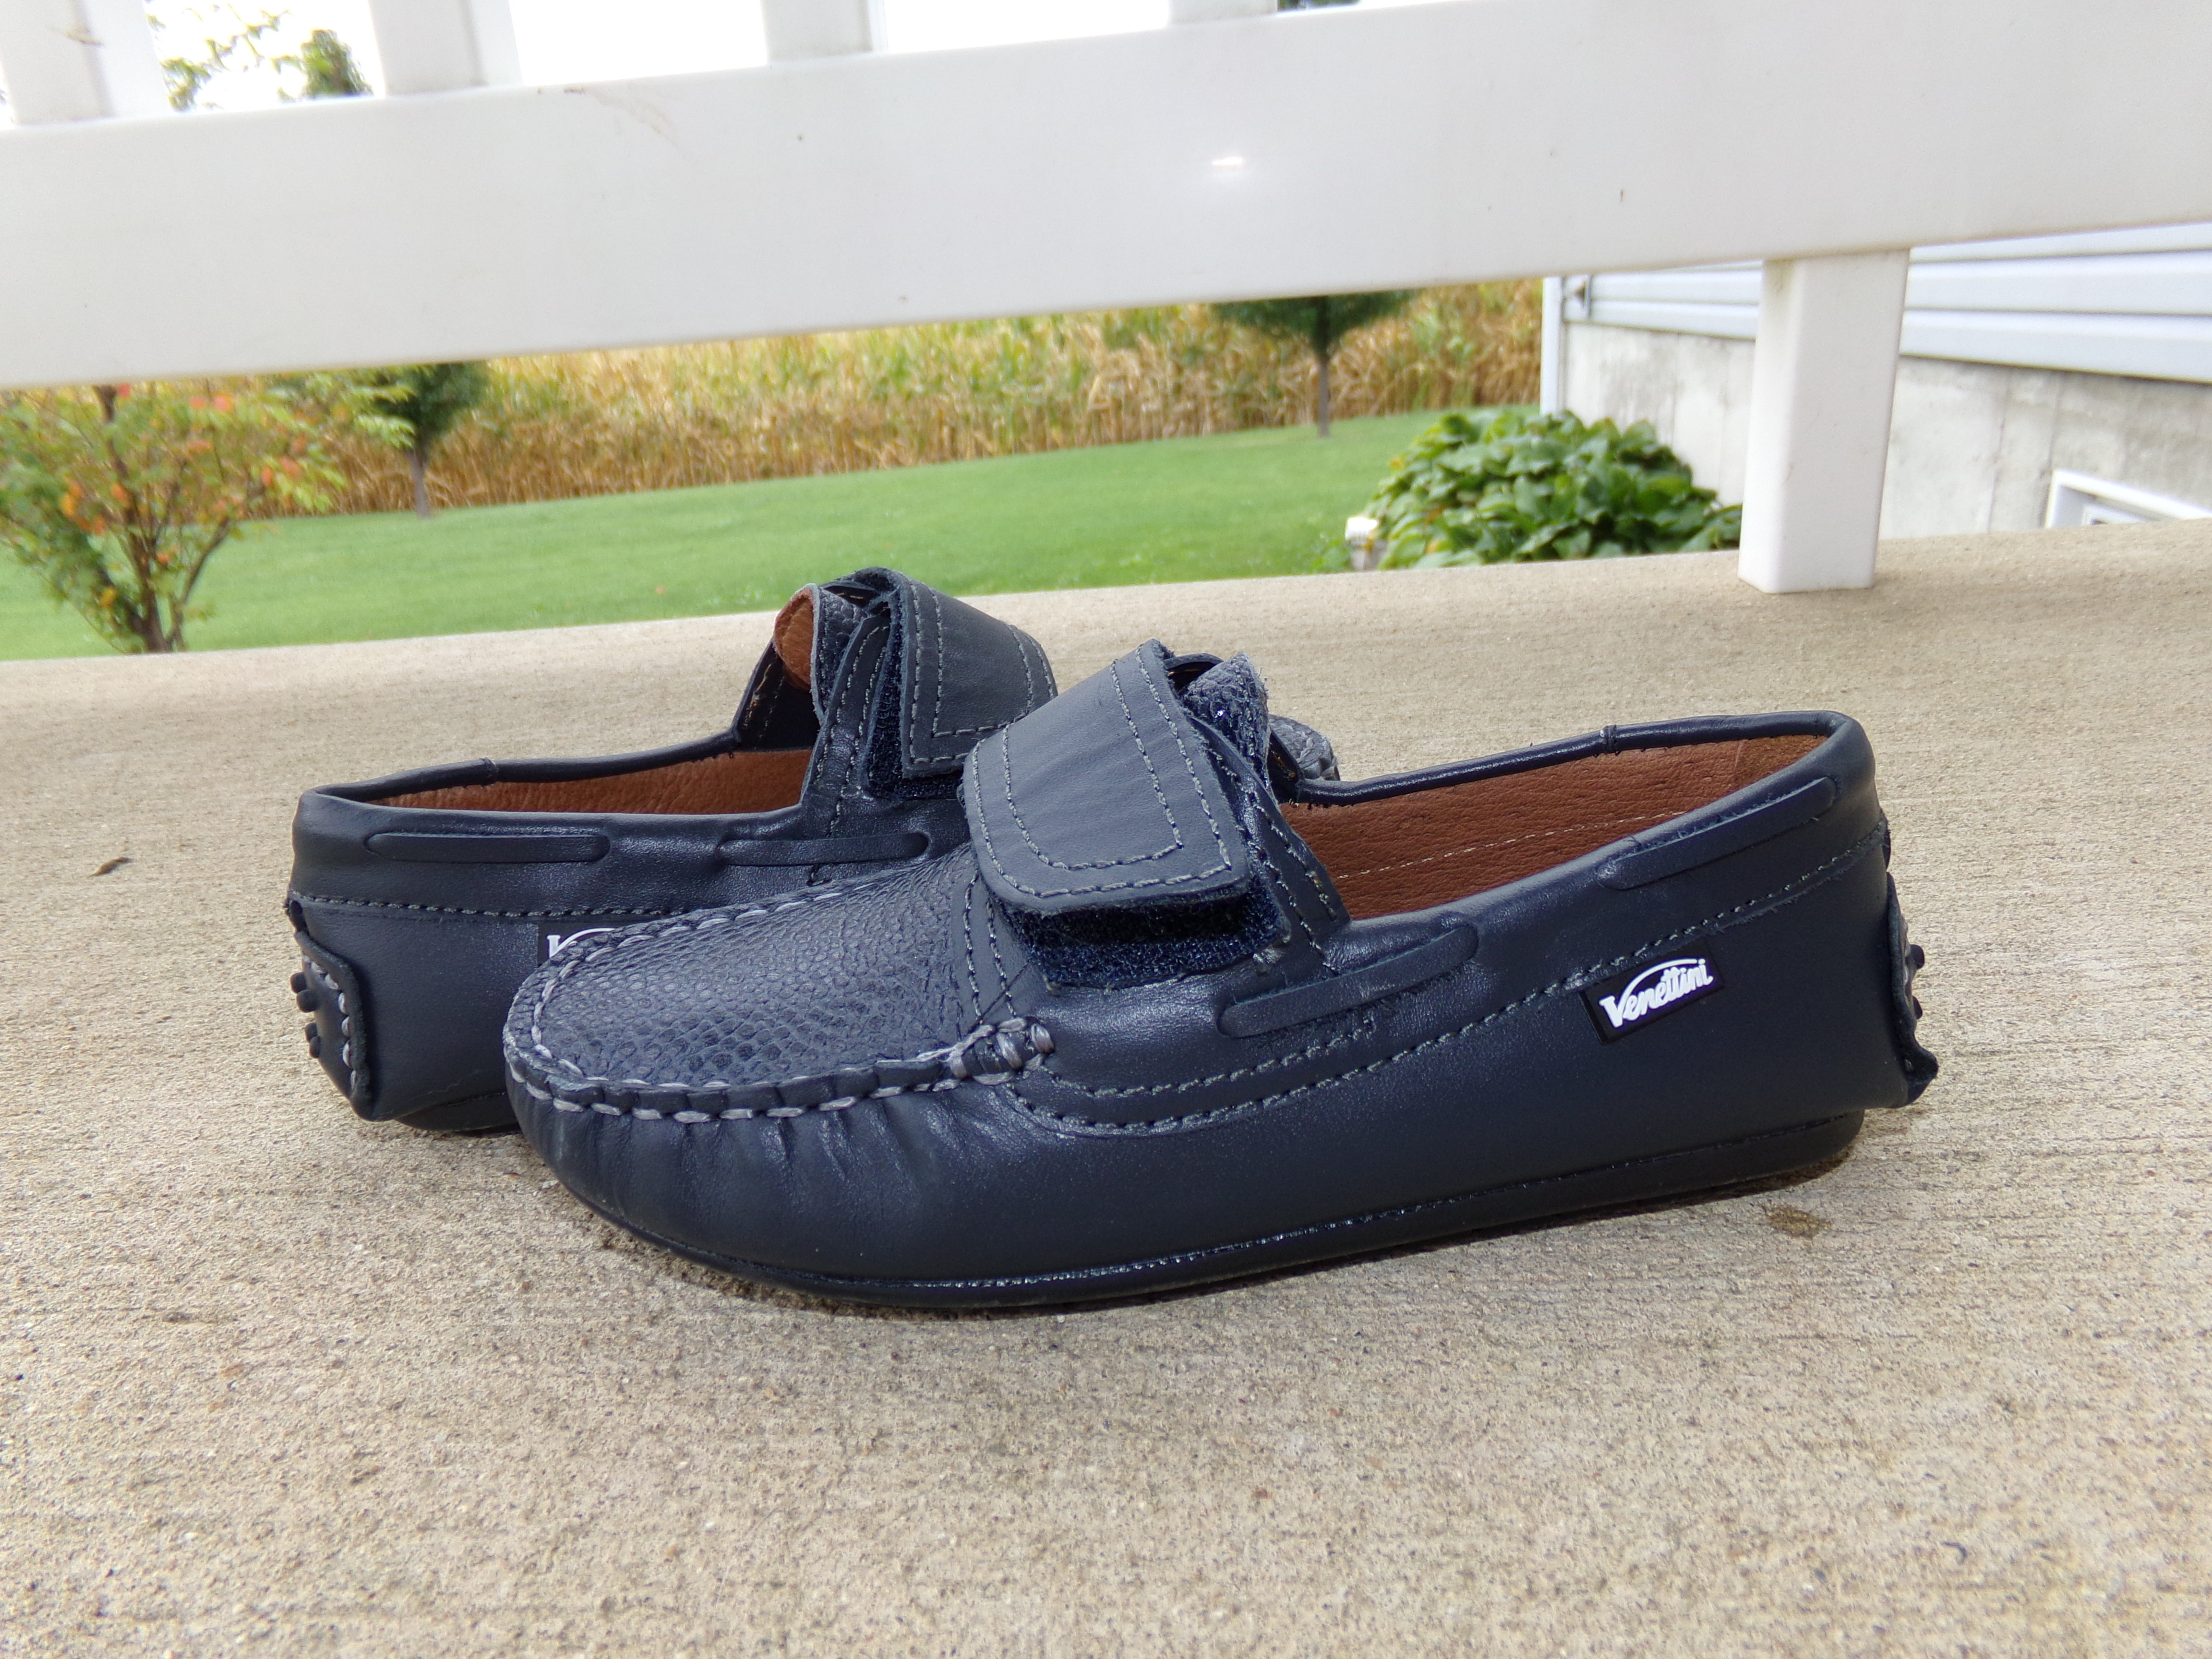 Boys Loafer Shoes from Venettini